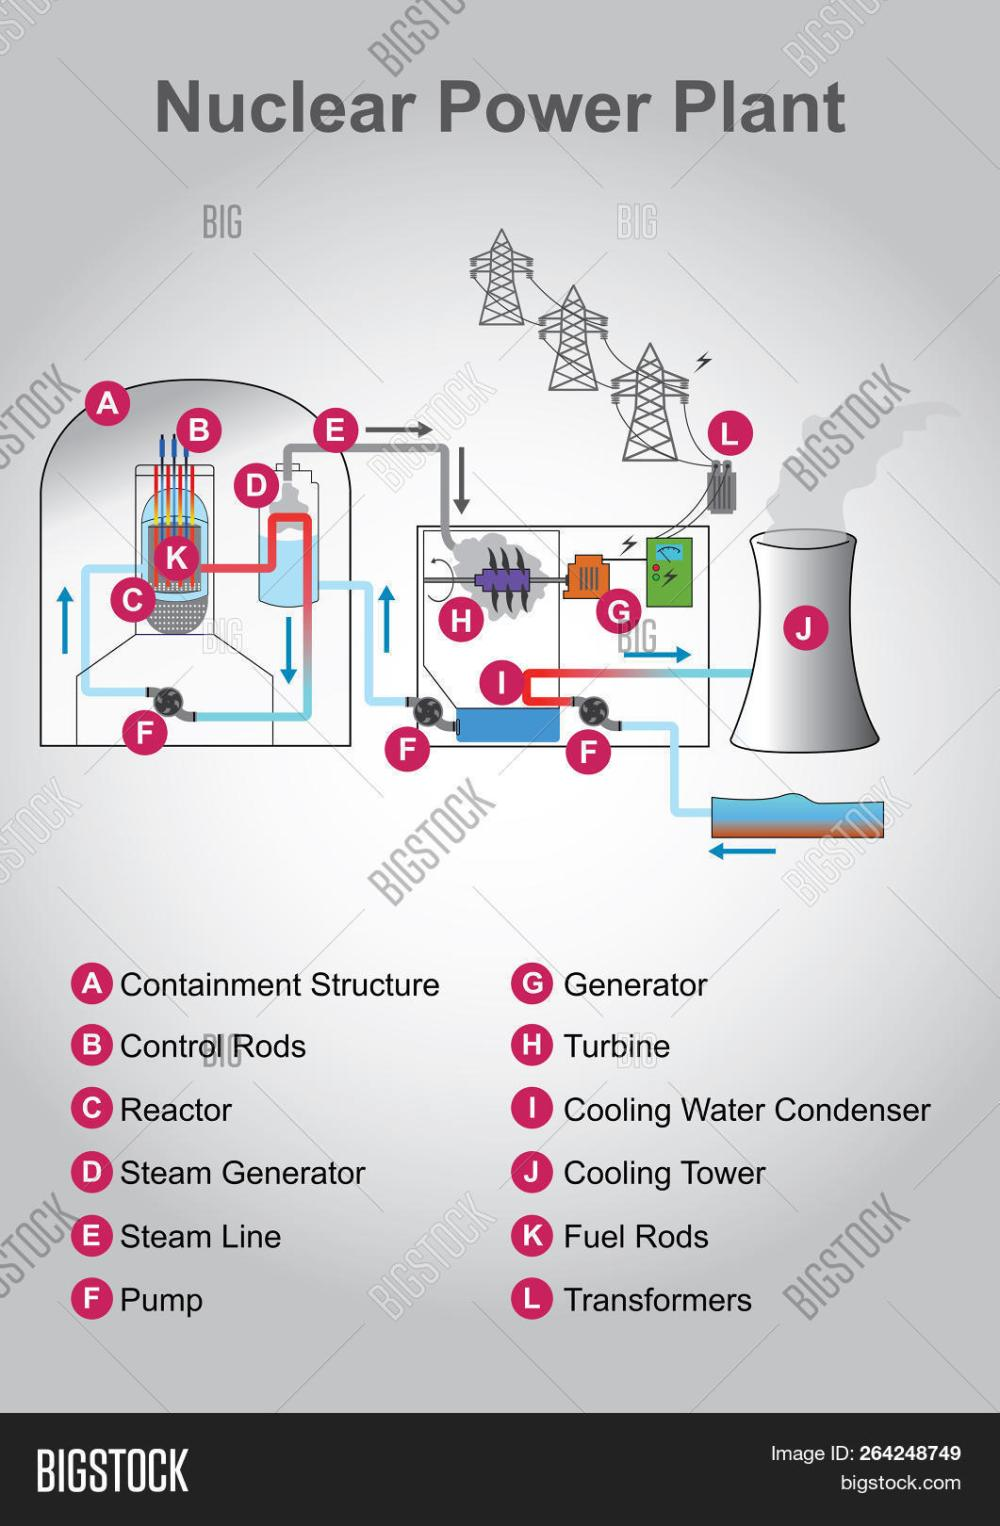 medium resolution of nuclear engineering system nuclear power plant structure